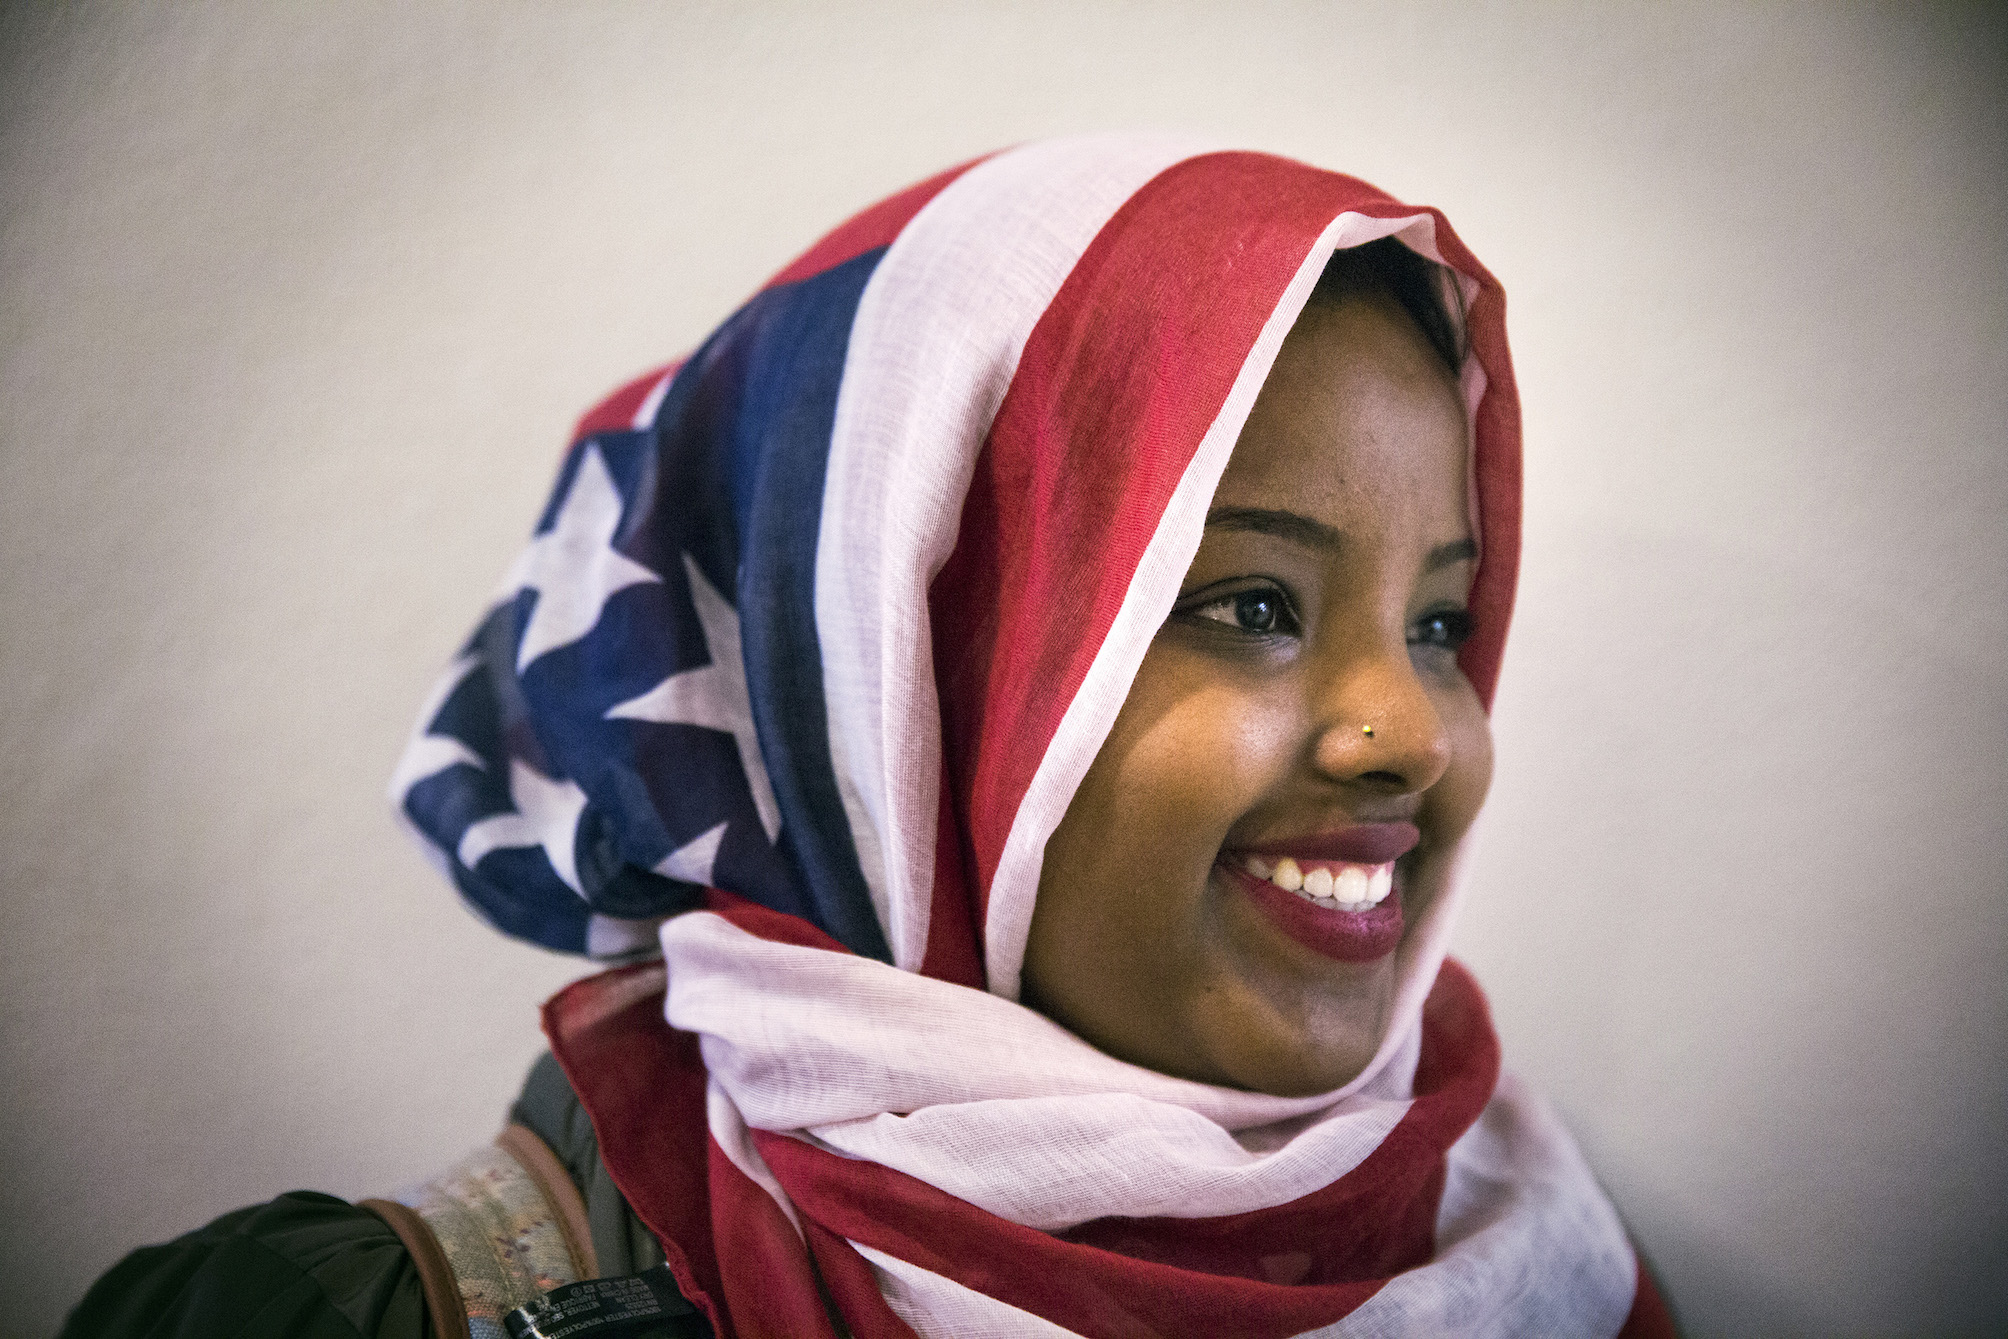 Barwaaqo Dirir, 21, decided to wear an American flag hijab for the first time while attending a talk by Jaylani Hussein on Islamophobia.